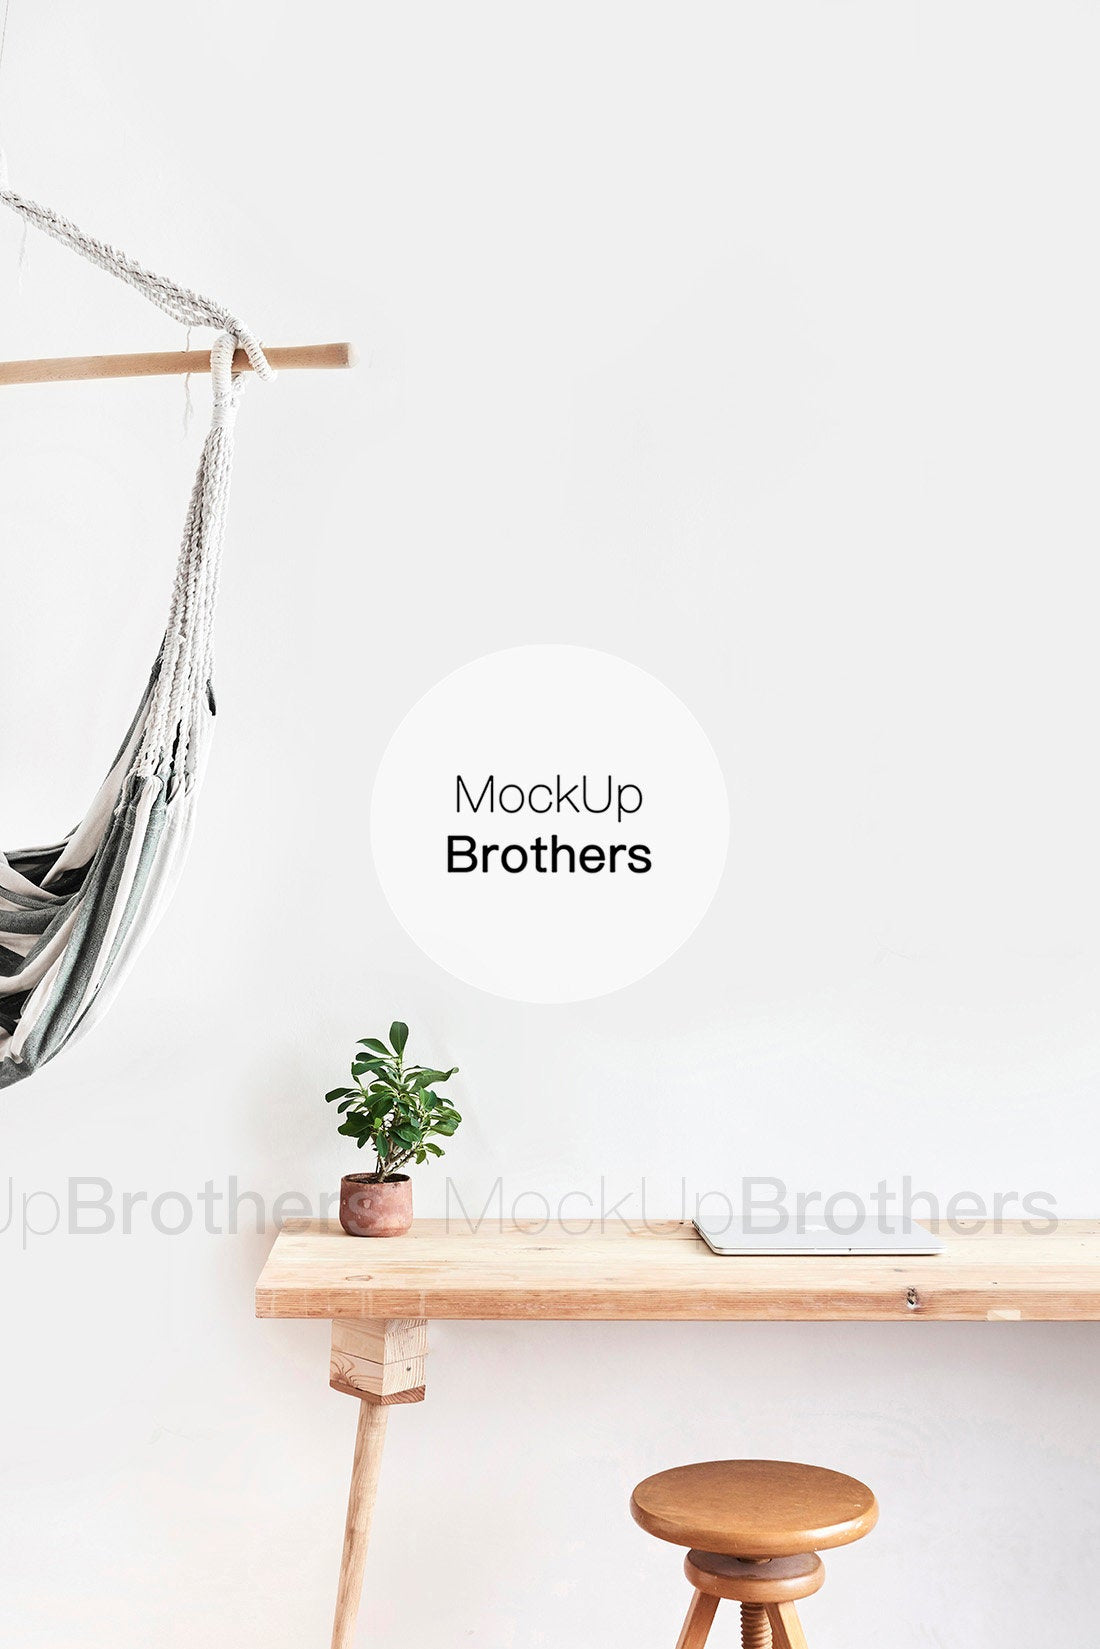 Nordic interior stock photography by Mockup Brothers